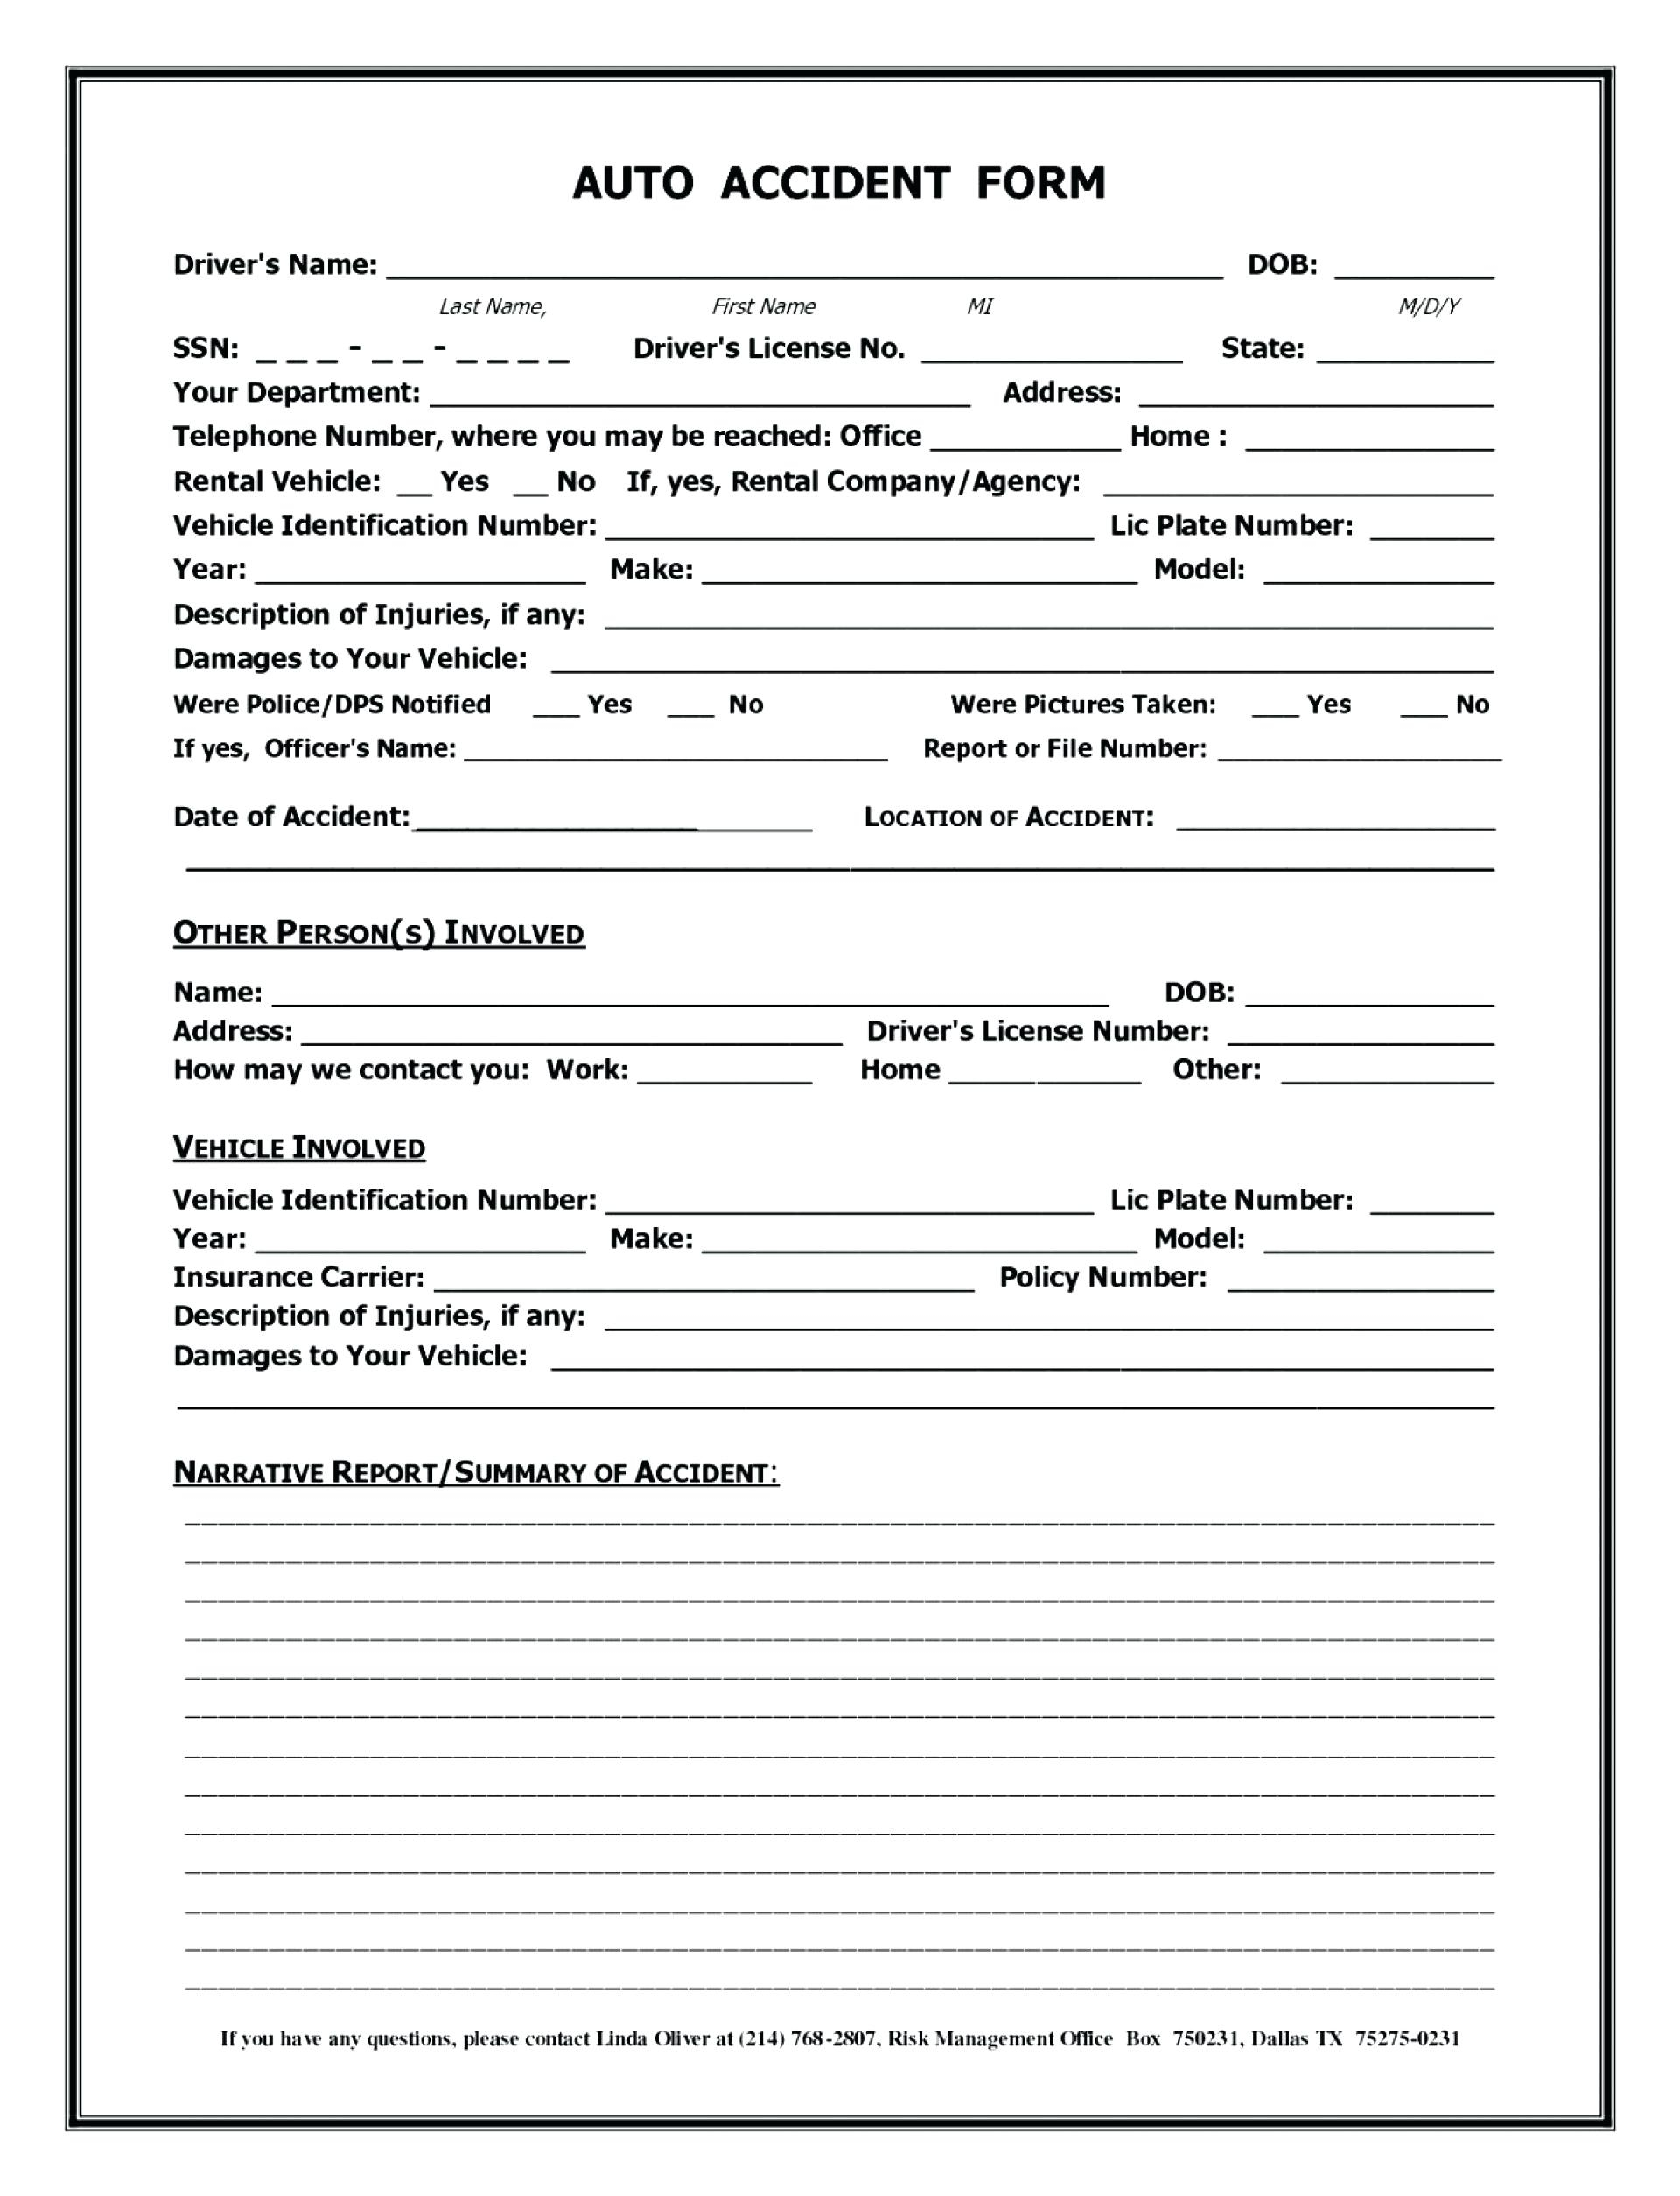 Accident Record Book Template – Tophatsheet.co Pertaining To Motor Vehicle Accident Report Form Template